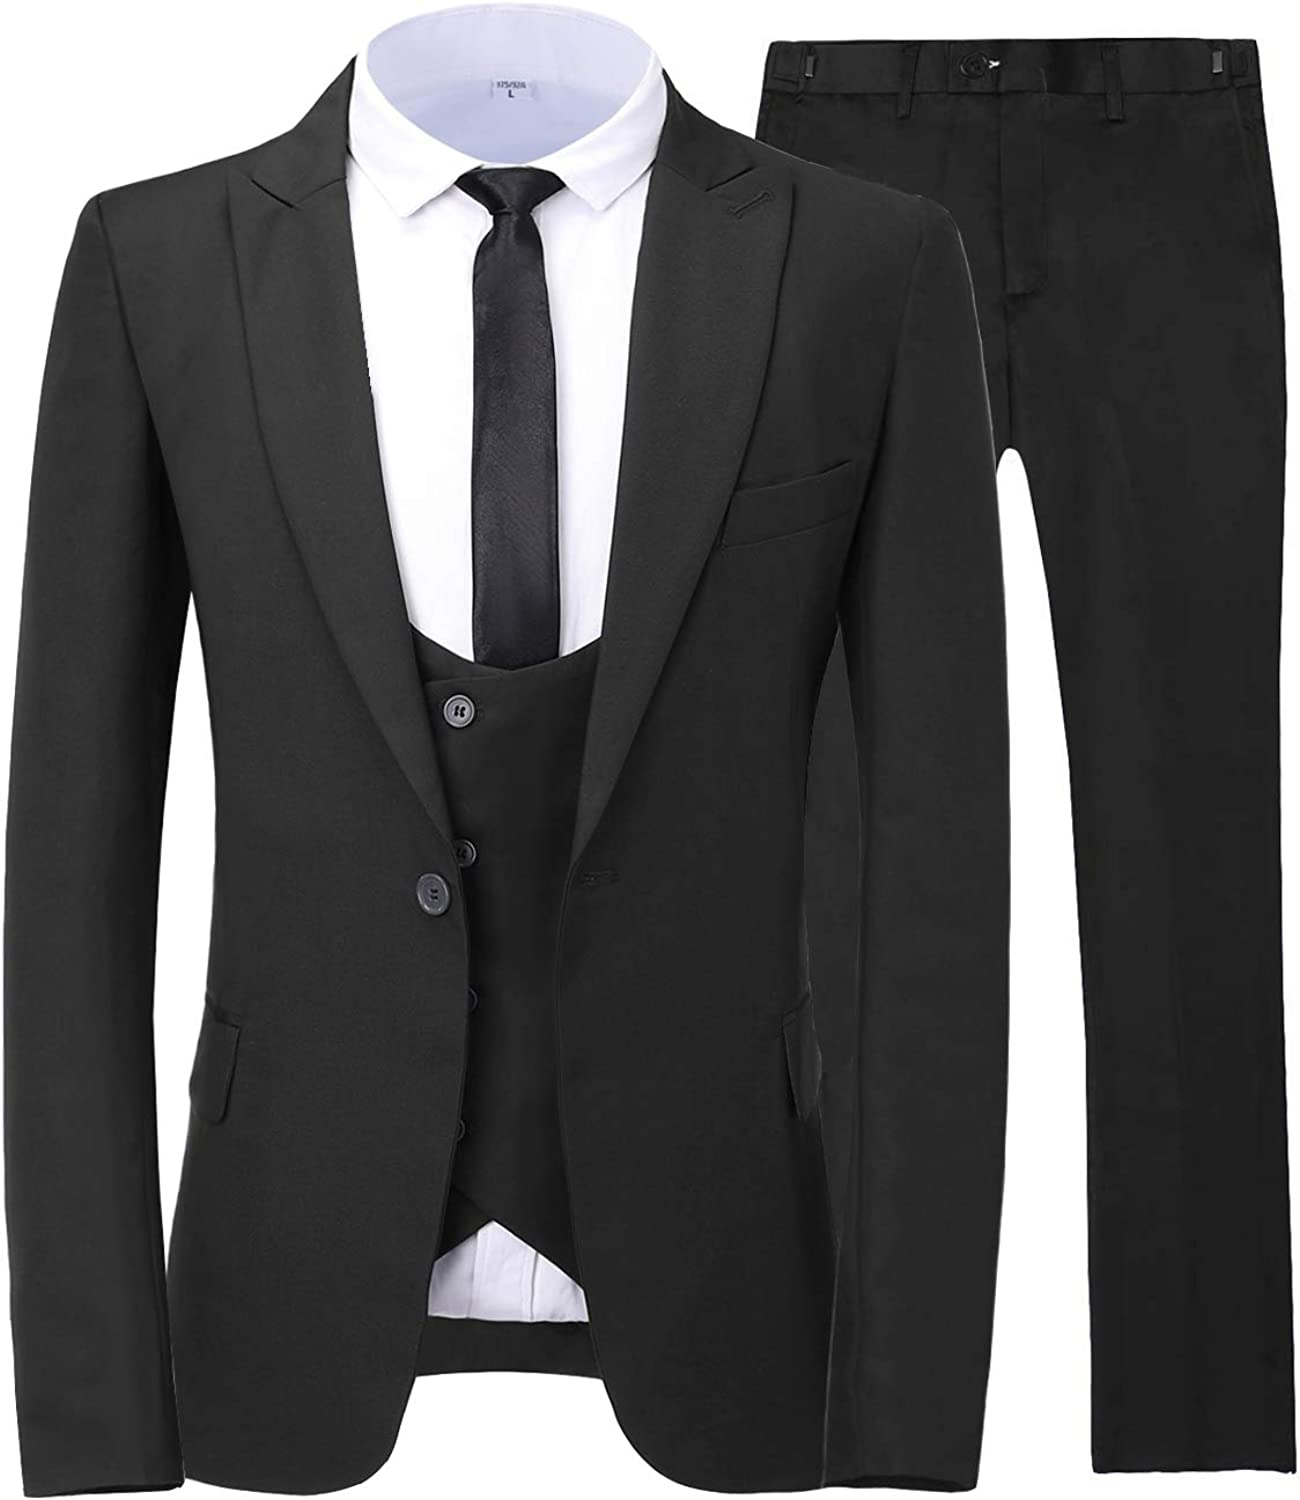 JYDress Mens Double Breasted 3 Pieces Suits Slim Fit Wedding Groom Tuxedos